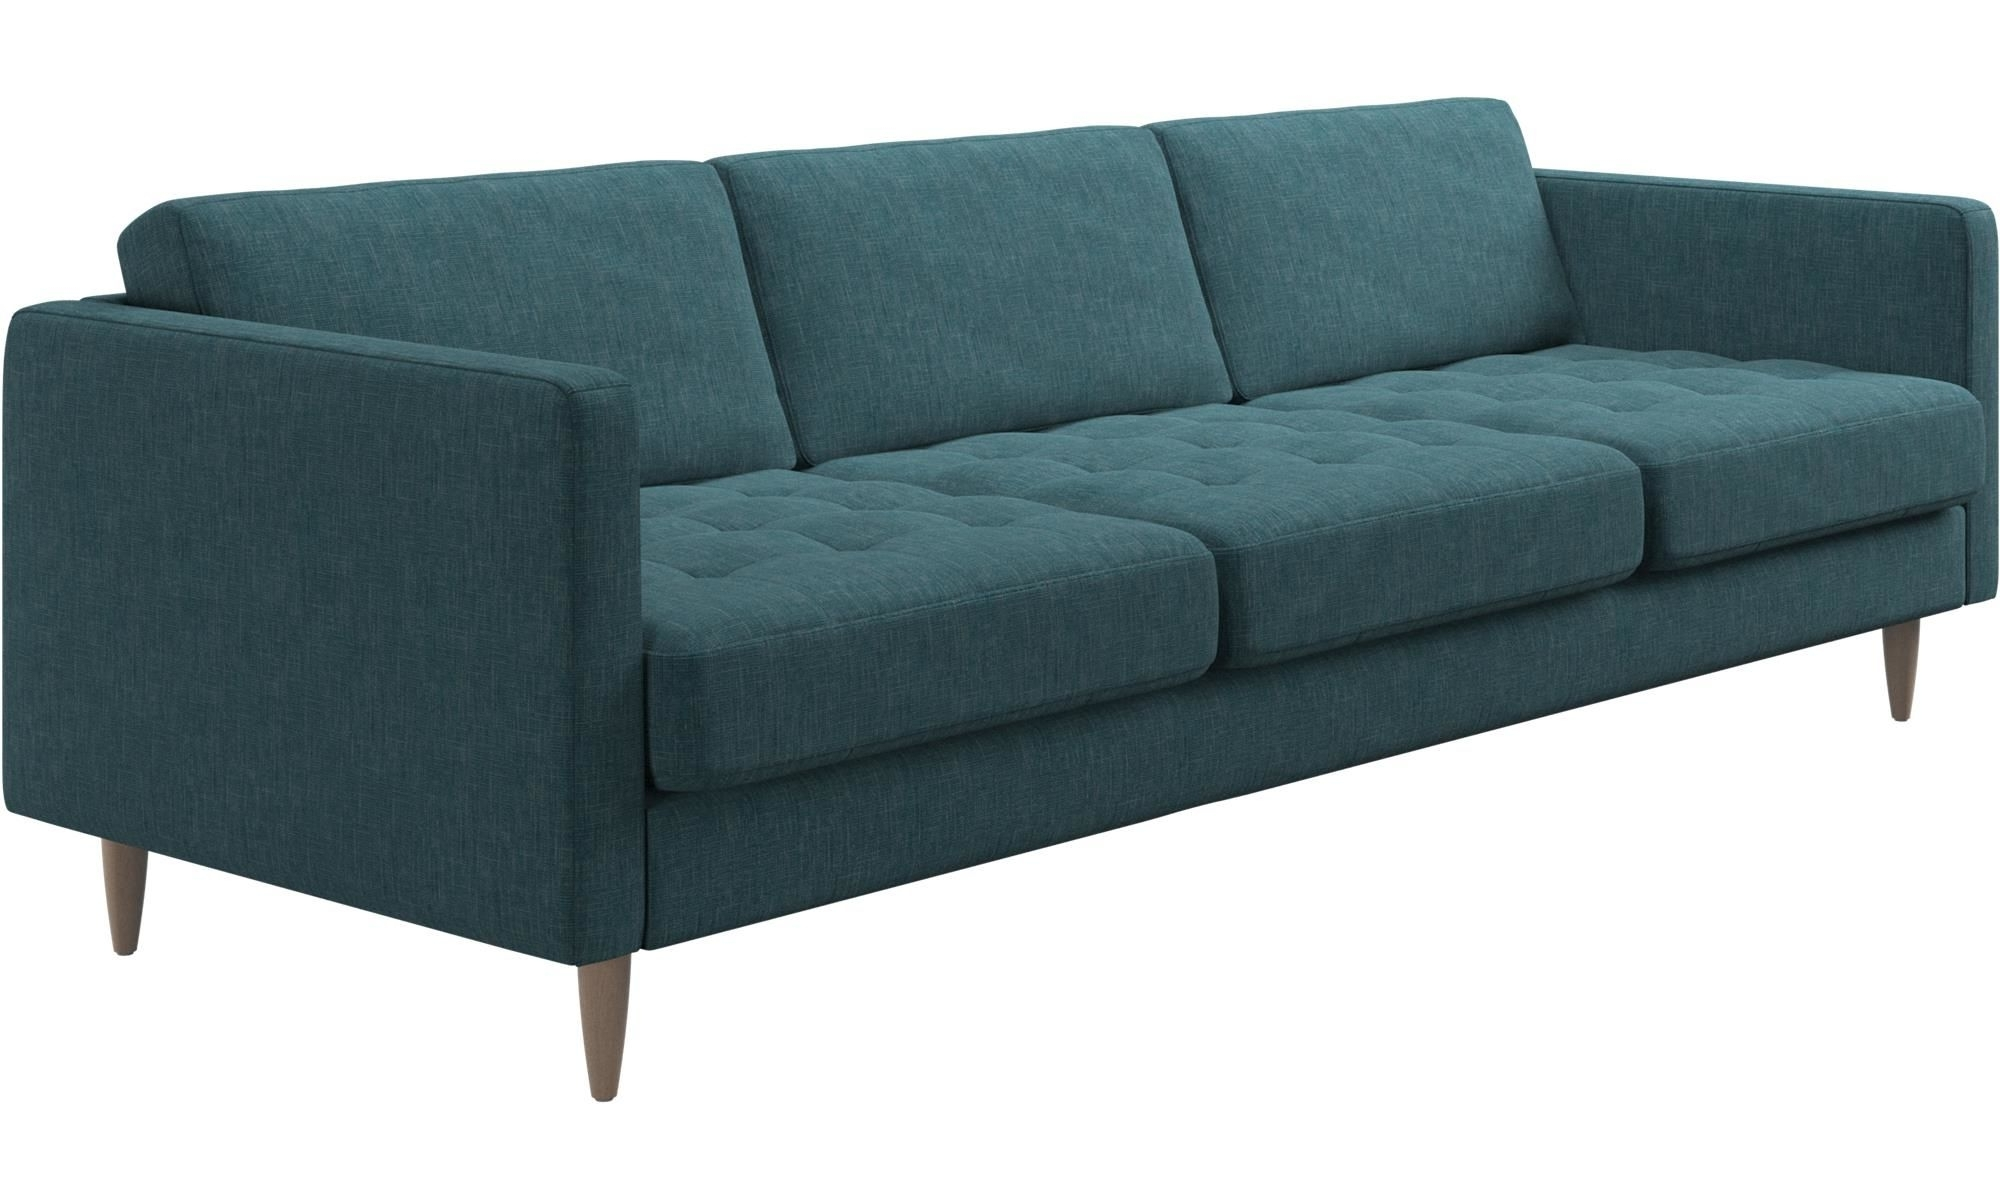 Well Liked Pensacola Fl Sectional Sofas Inside Furniture : Kelsey Tufted Loveseat Furniture Craigslist Pensacola (View 19 of 20)